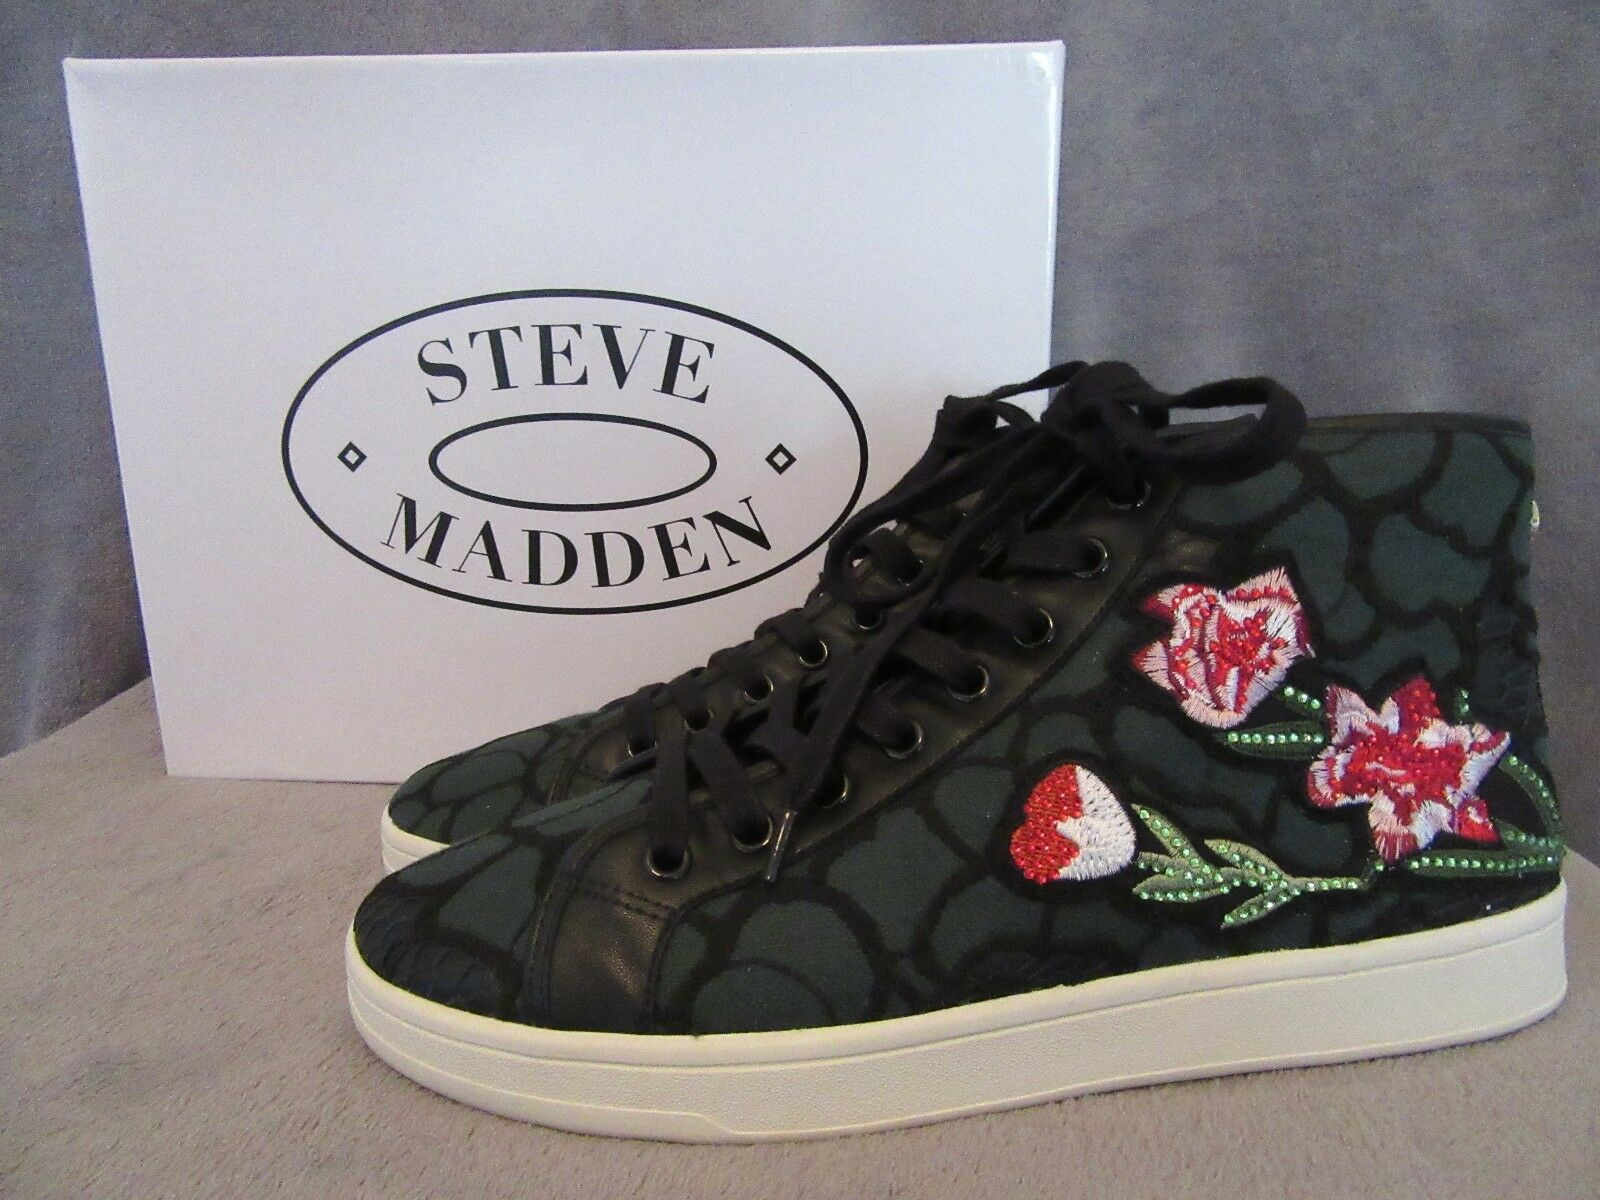 STEVE MADDEN Allie Green Floral Embroidery High Top Sneaker shoes US 9 M NWB